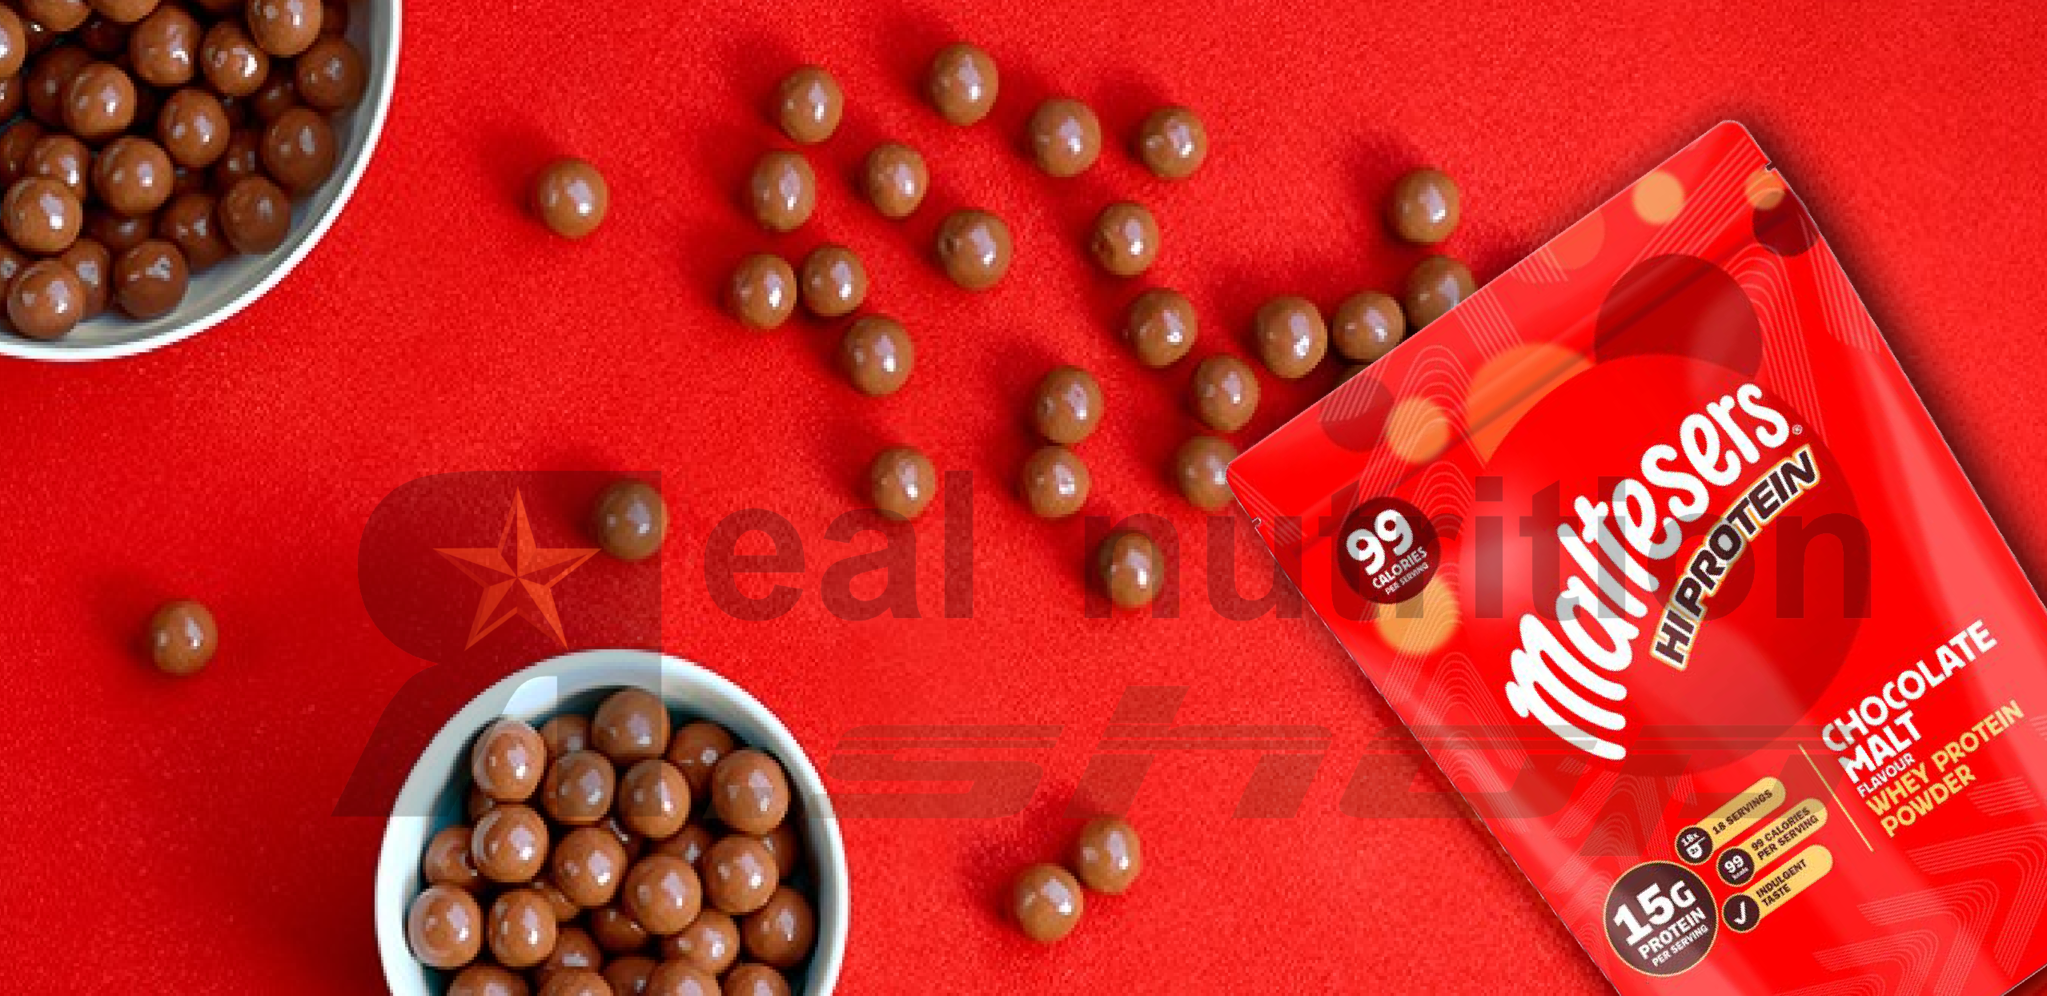 Real Nutrition Shop - Maltesers Hi Protein